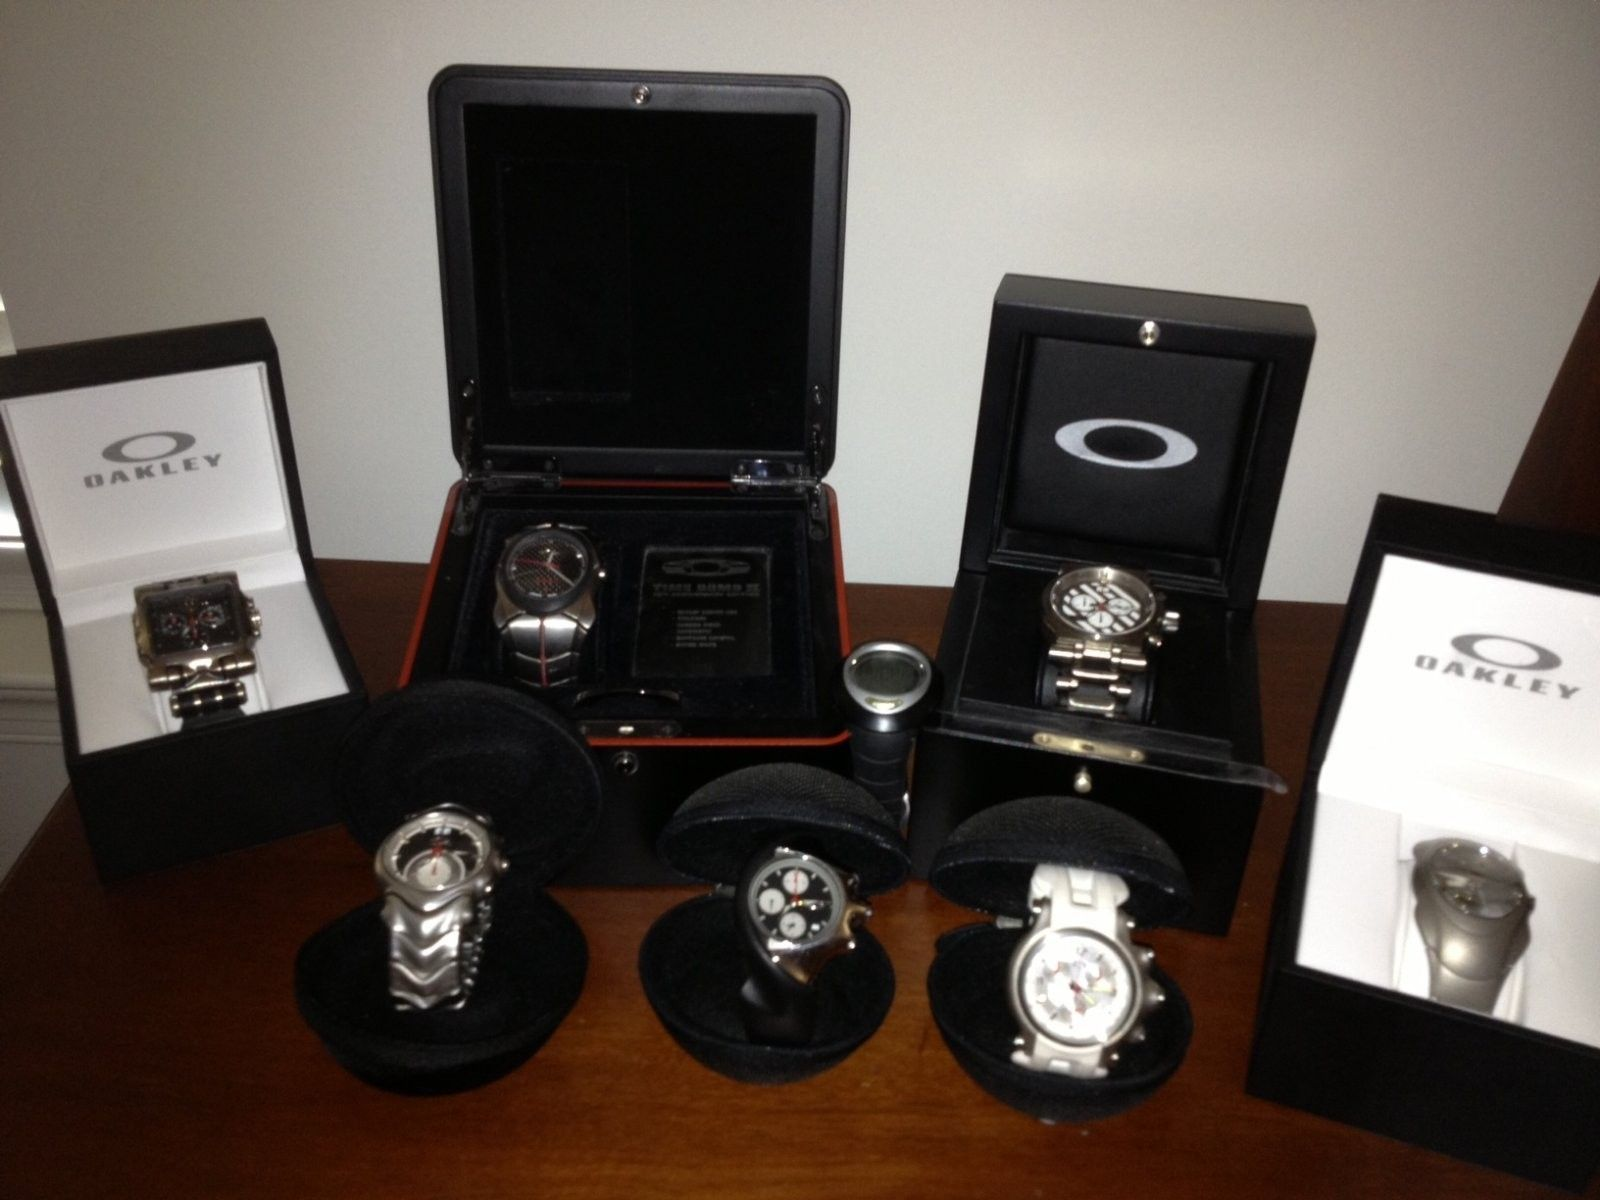 My Oakley Watch Collection - Watch Collection.jpg